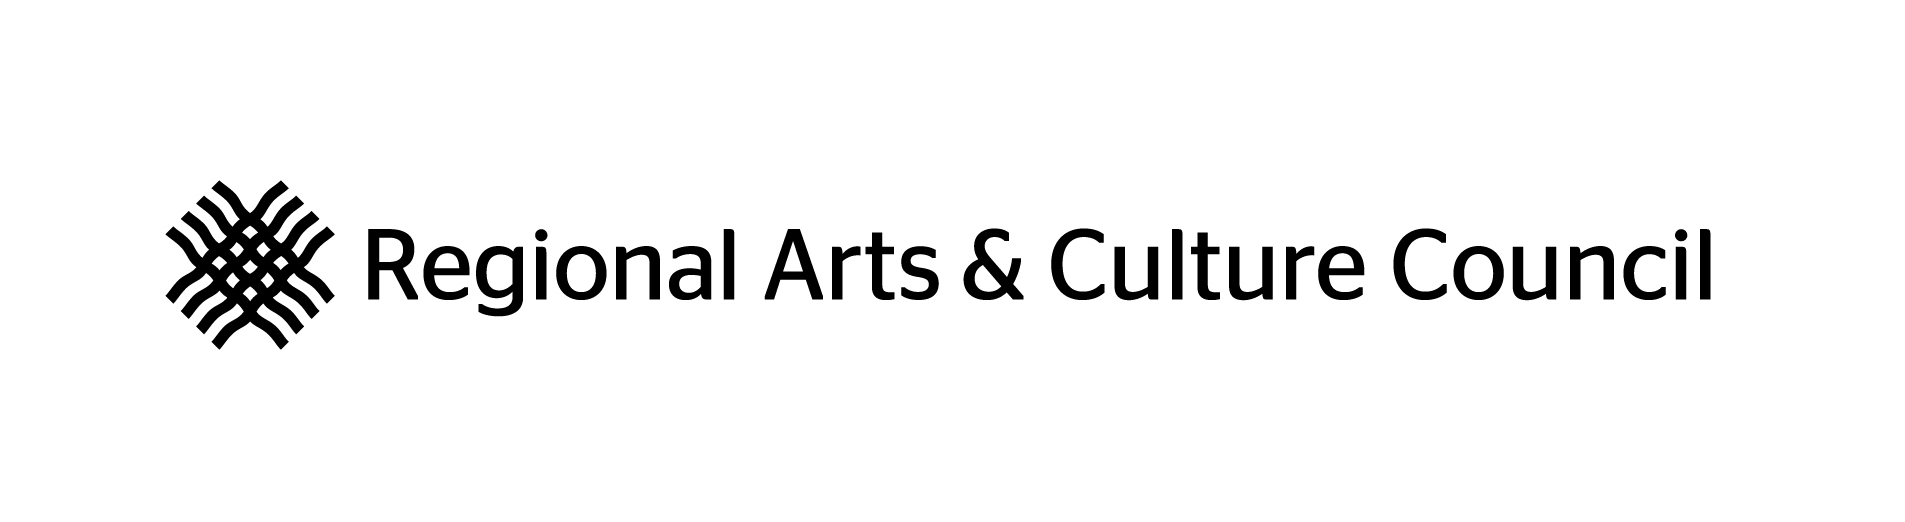 Tables Turned is funded in part by the Regional Arts & Culture Council.